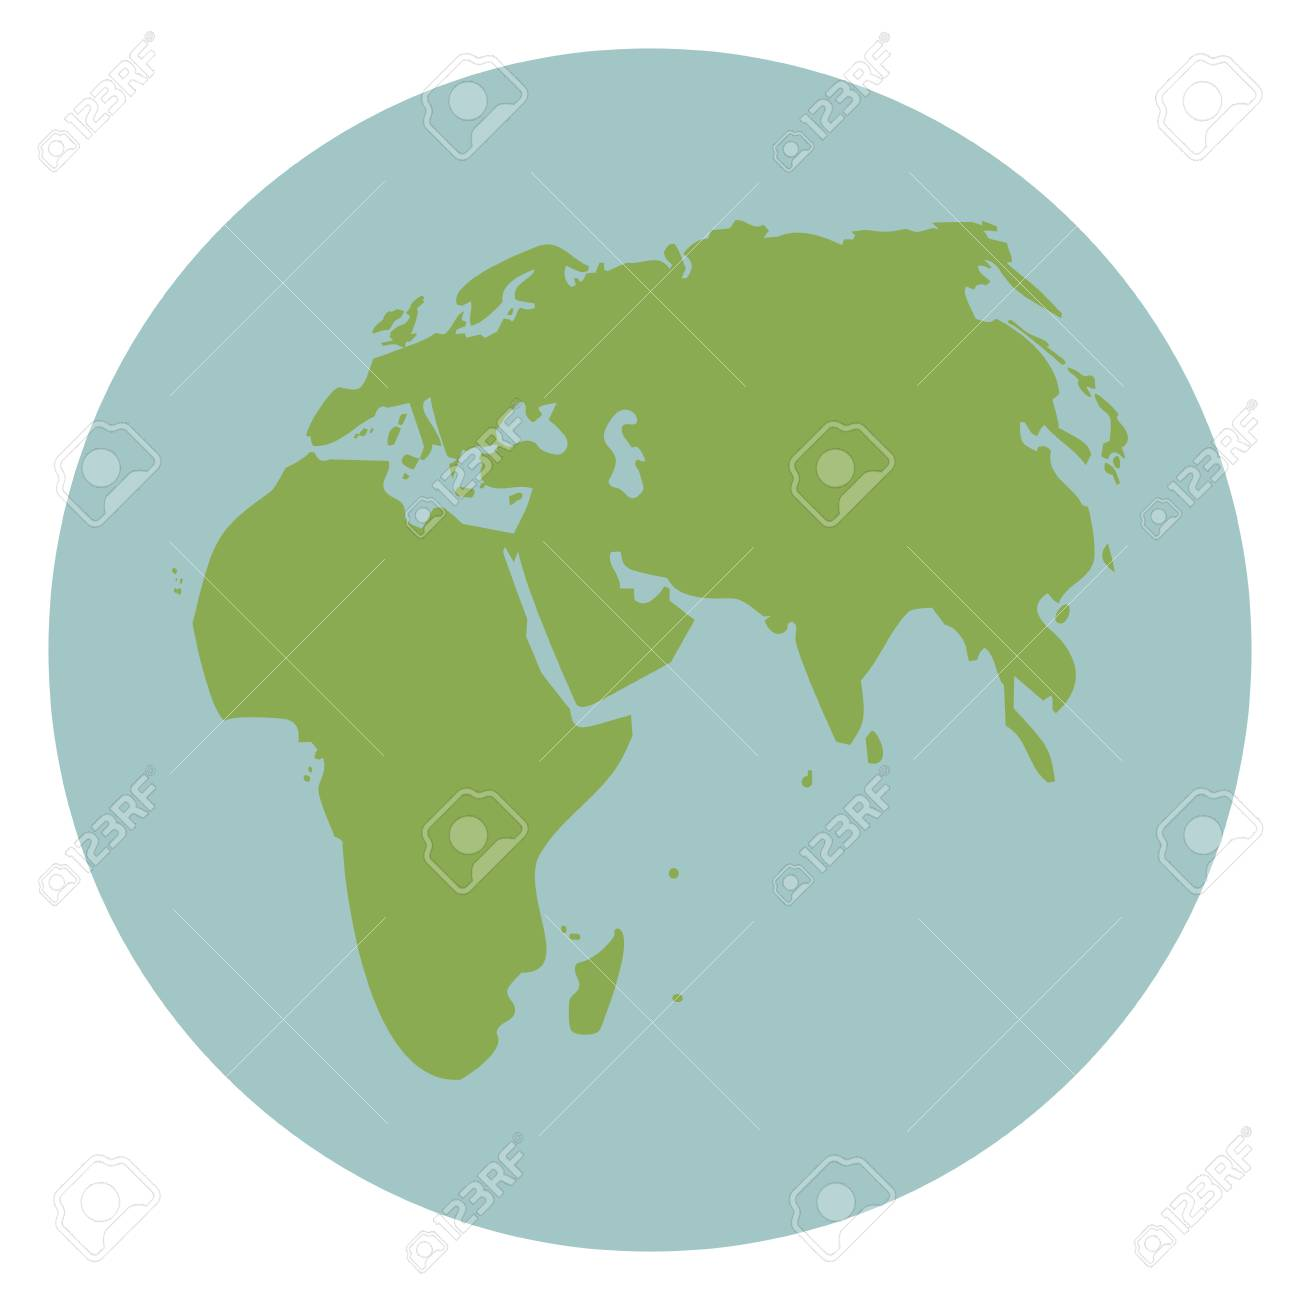 Globe world earth map global continent vector illustration royalty globe world earth map global continent vector illustration stock vector 80536547 gumiabroncs Images